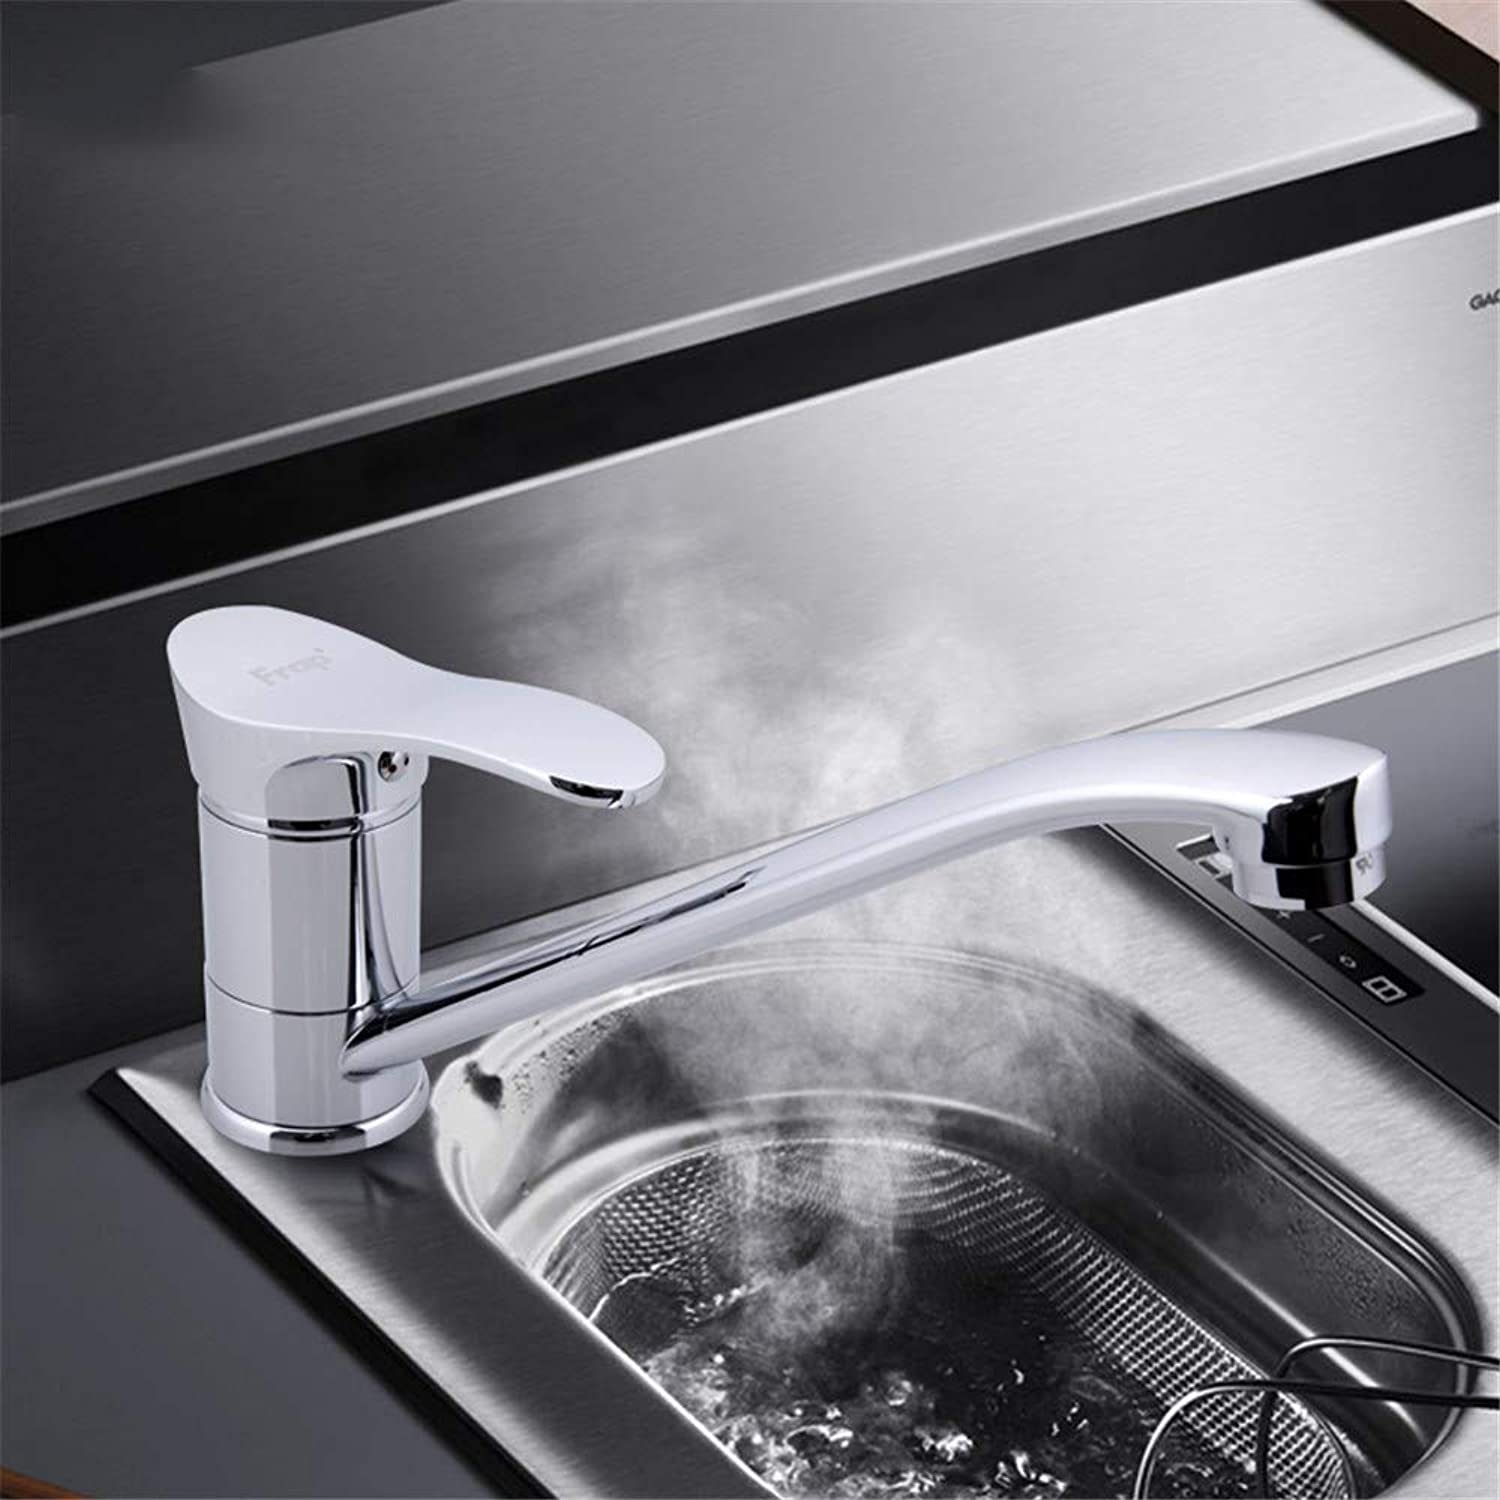 Joeyhome Chrome Finished Kitchen Sink Faucet Cold and Hot Water Mixer Single Handle Crane Torneira Cozinha 360 Degree redation F4901